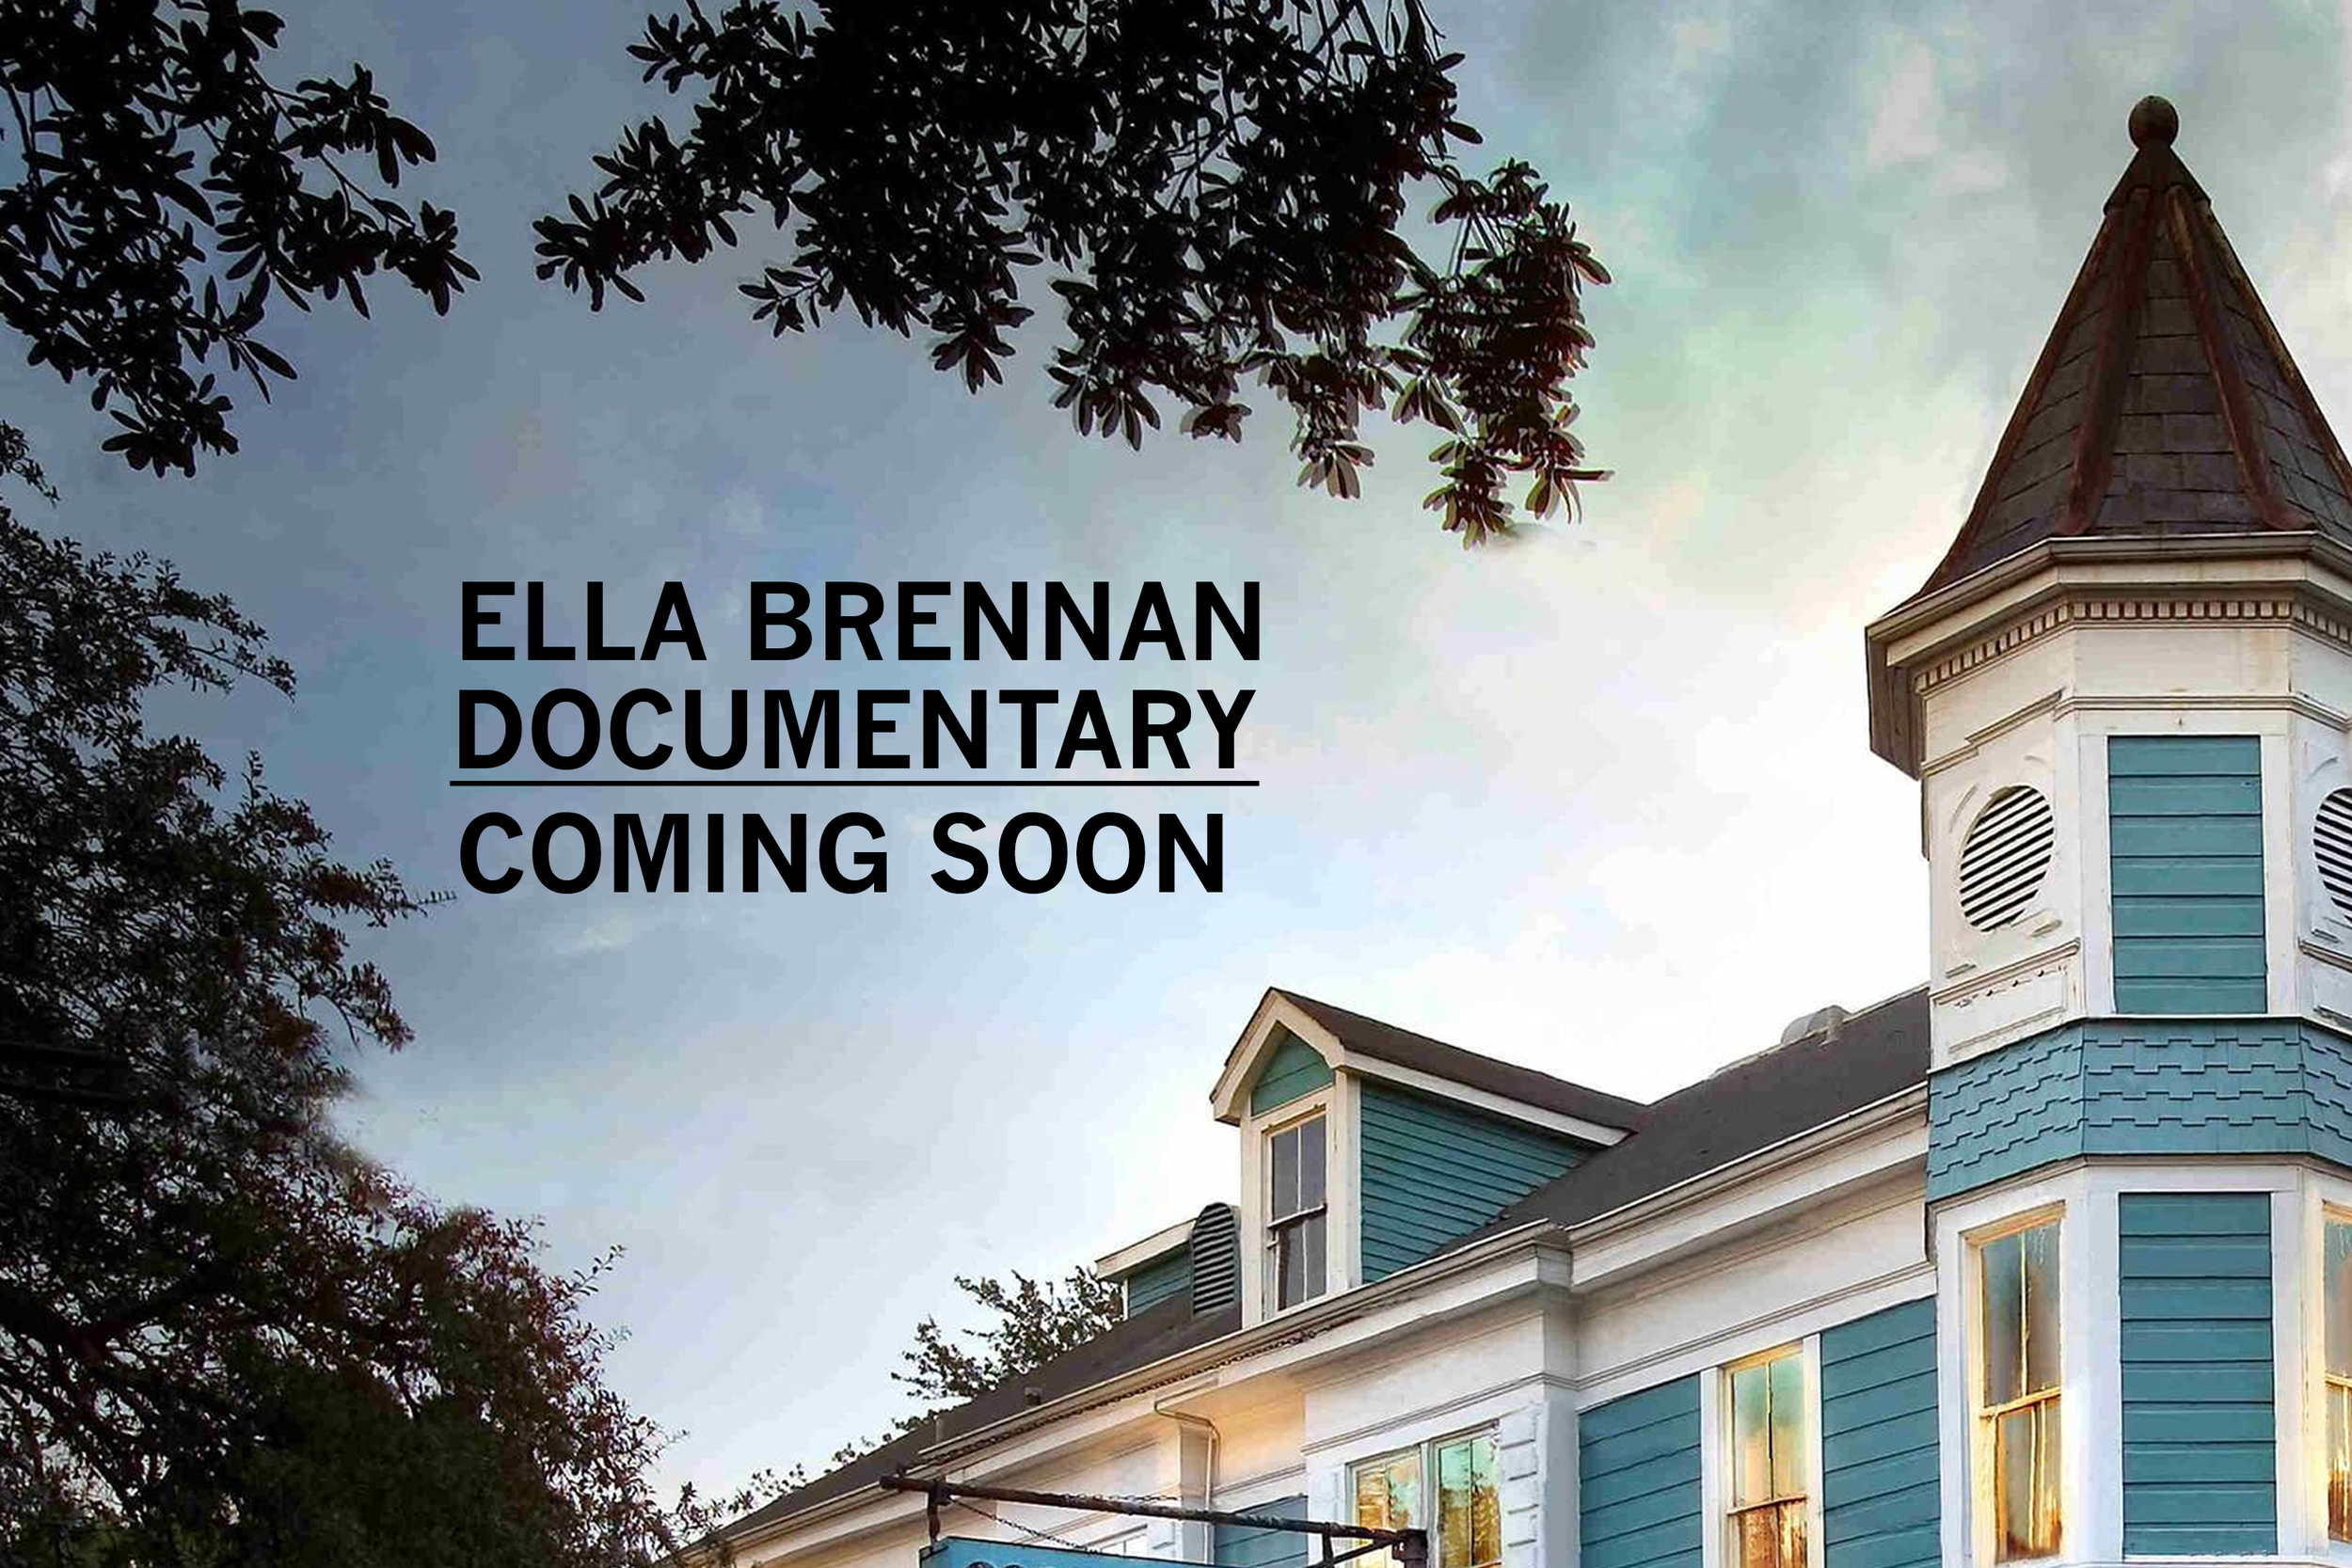 After completing principle photography in New Orleans and New York City, our editing team lead by Creative Director, Leslie Iwerks, is now actively piecing together a film which will take audiences on a journey into the heart of one of America's most well-known restaurant establishments.